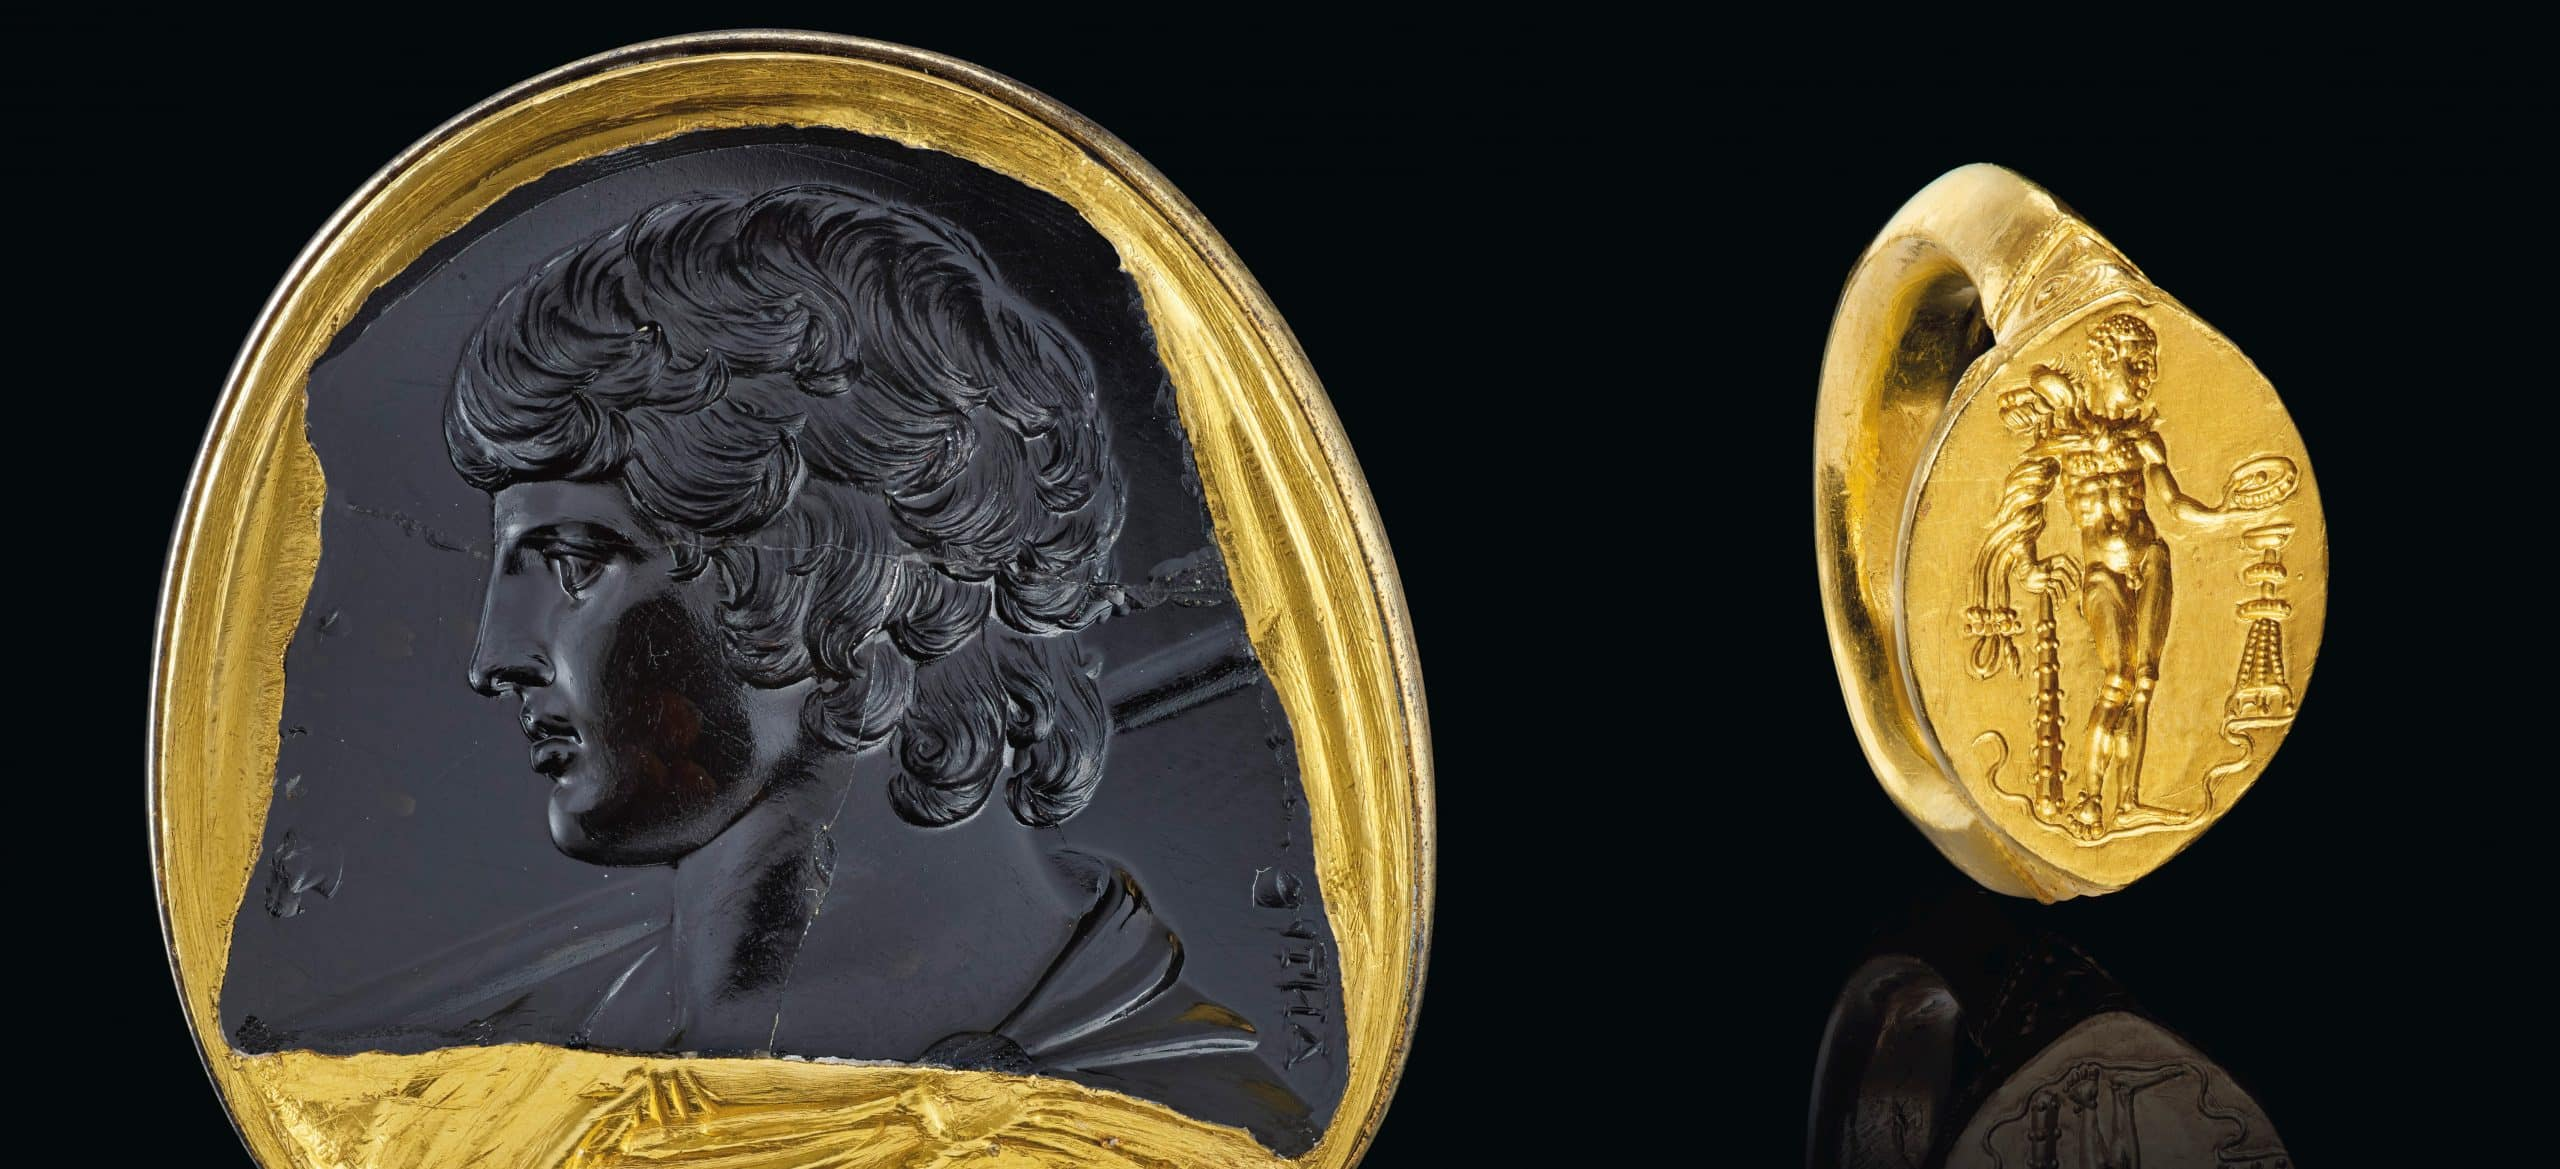 Left: Marlborough Antinous - A Roman black chalcedony intaglio portrait of Antinous, circa 130-138 A.D. Right: Greek gold finger ring with Herakles, classical period, ca. late 5th-early 4th century B.C.